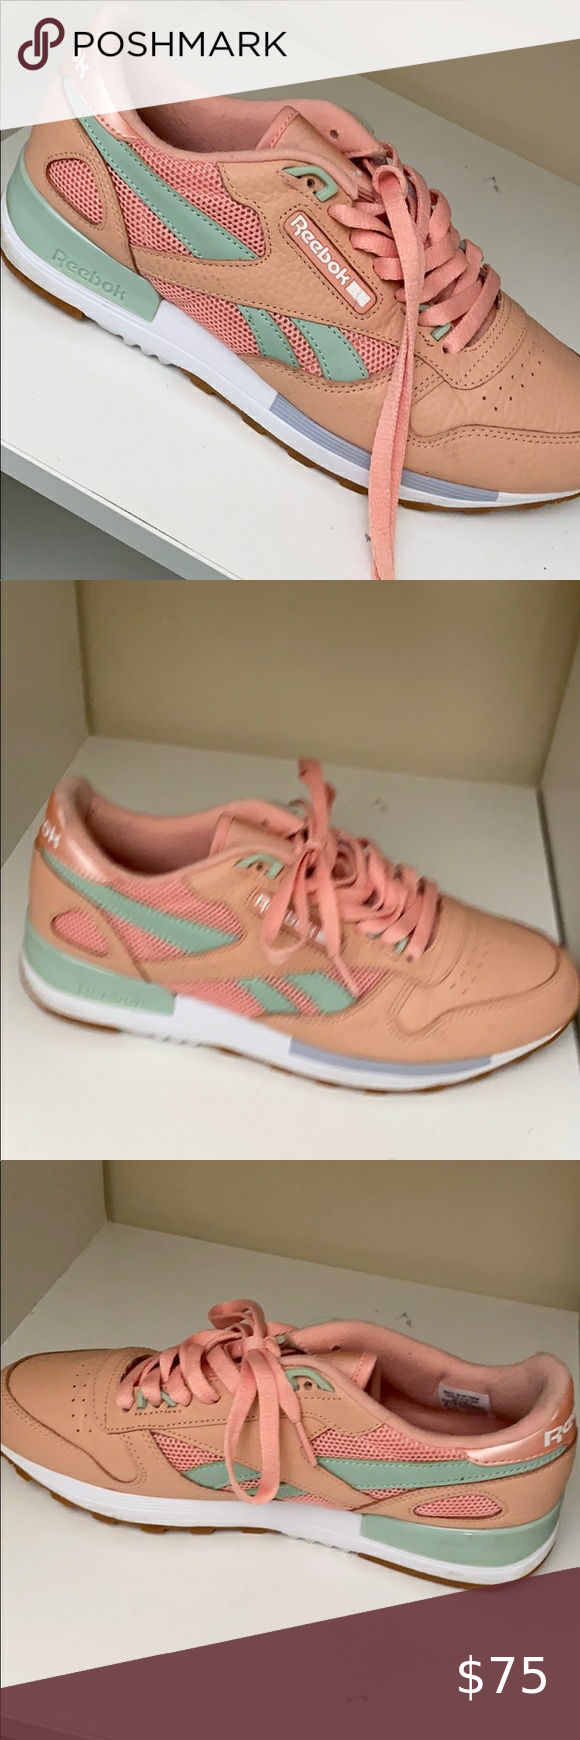 peach colored mens shoes